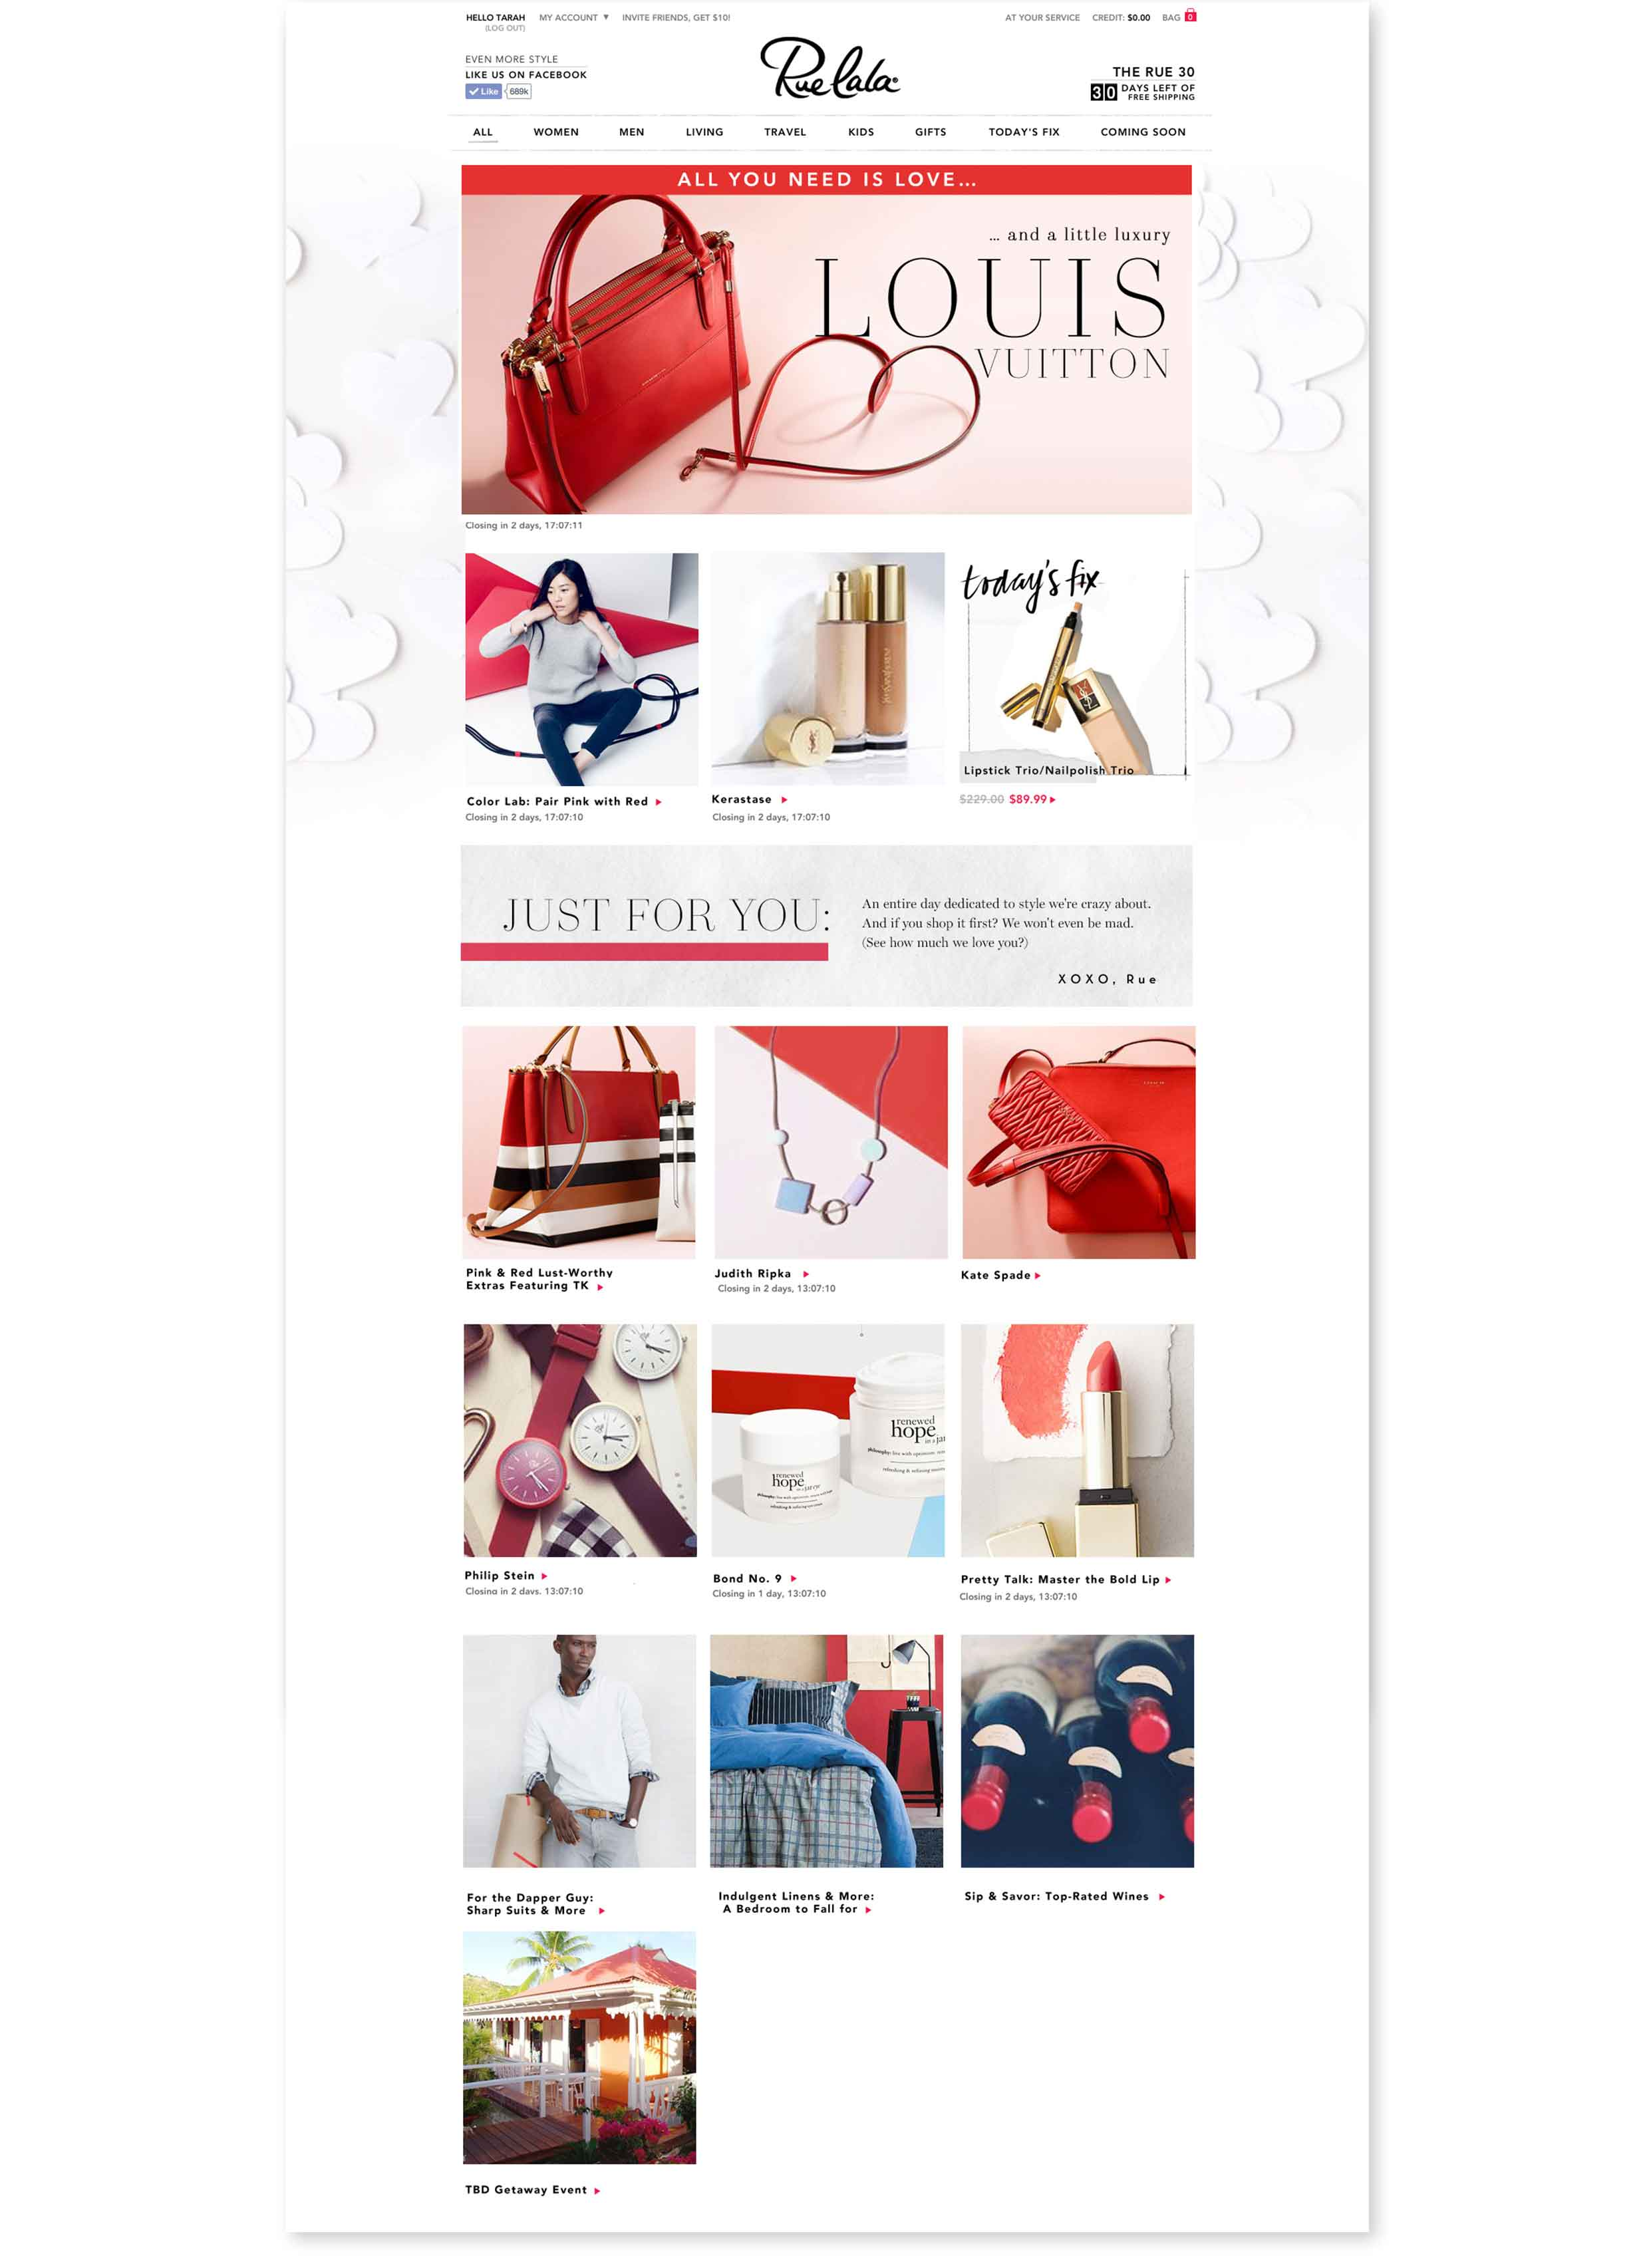 vday-valentines-day-ruelala-fashion-photography-shop-shopping-ecommerce-design-designer-graphic-design-type-typeography-font-serif-iphone-inspiration-jewelry-watches-handbags-advertisement-boston-nyc-lighting-model-modeling-agency-photoshoot.jpg